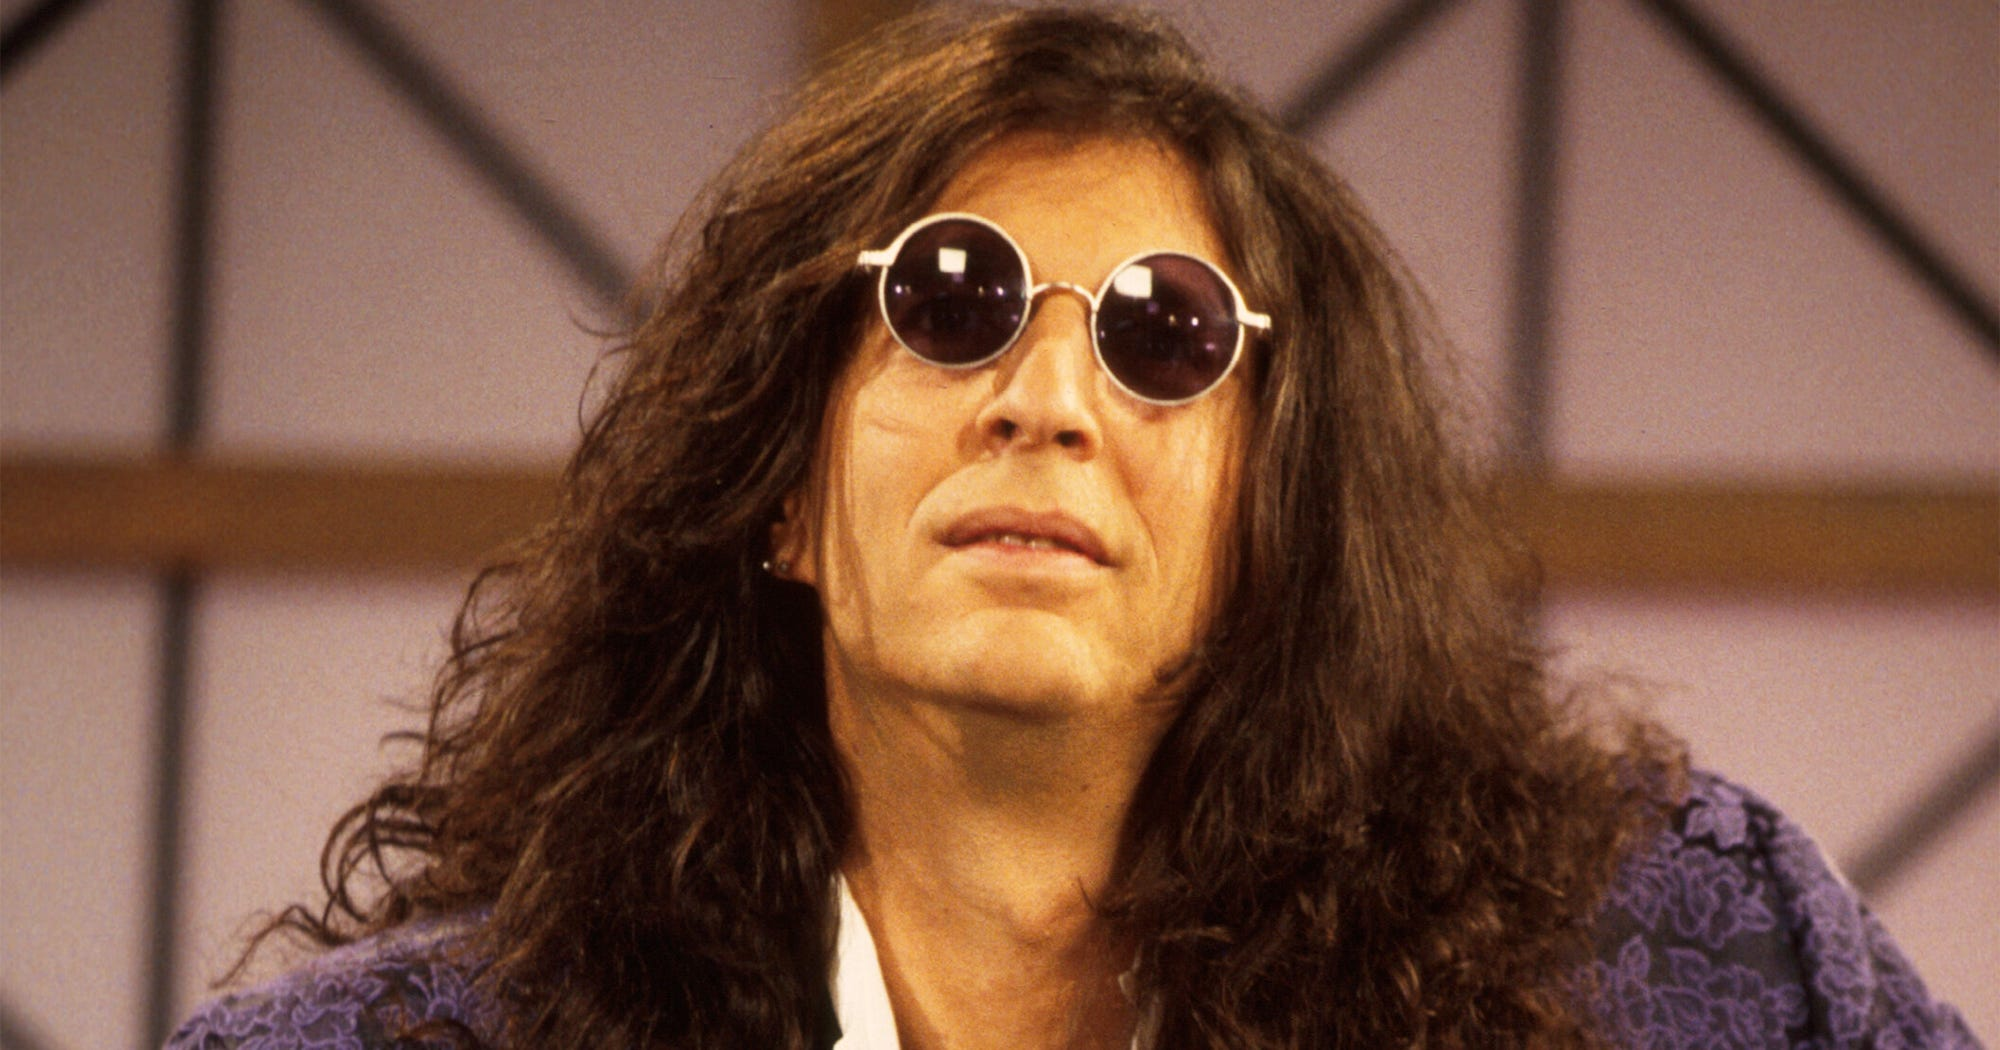 The Howard Stern Interview Shown In Lorena Actually Gets Rougher